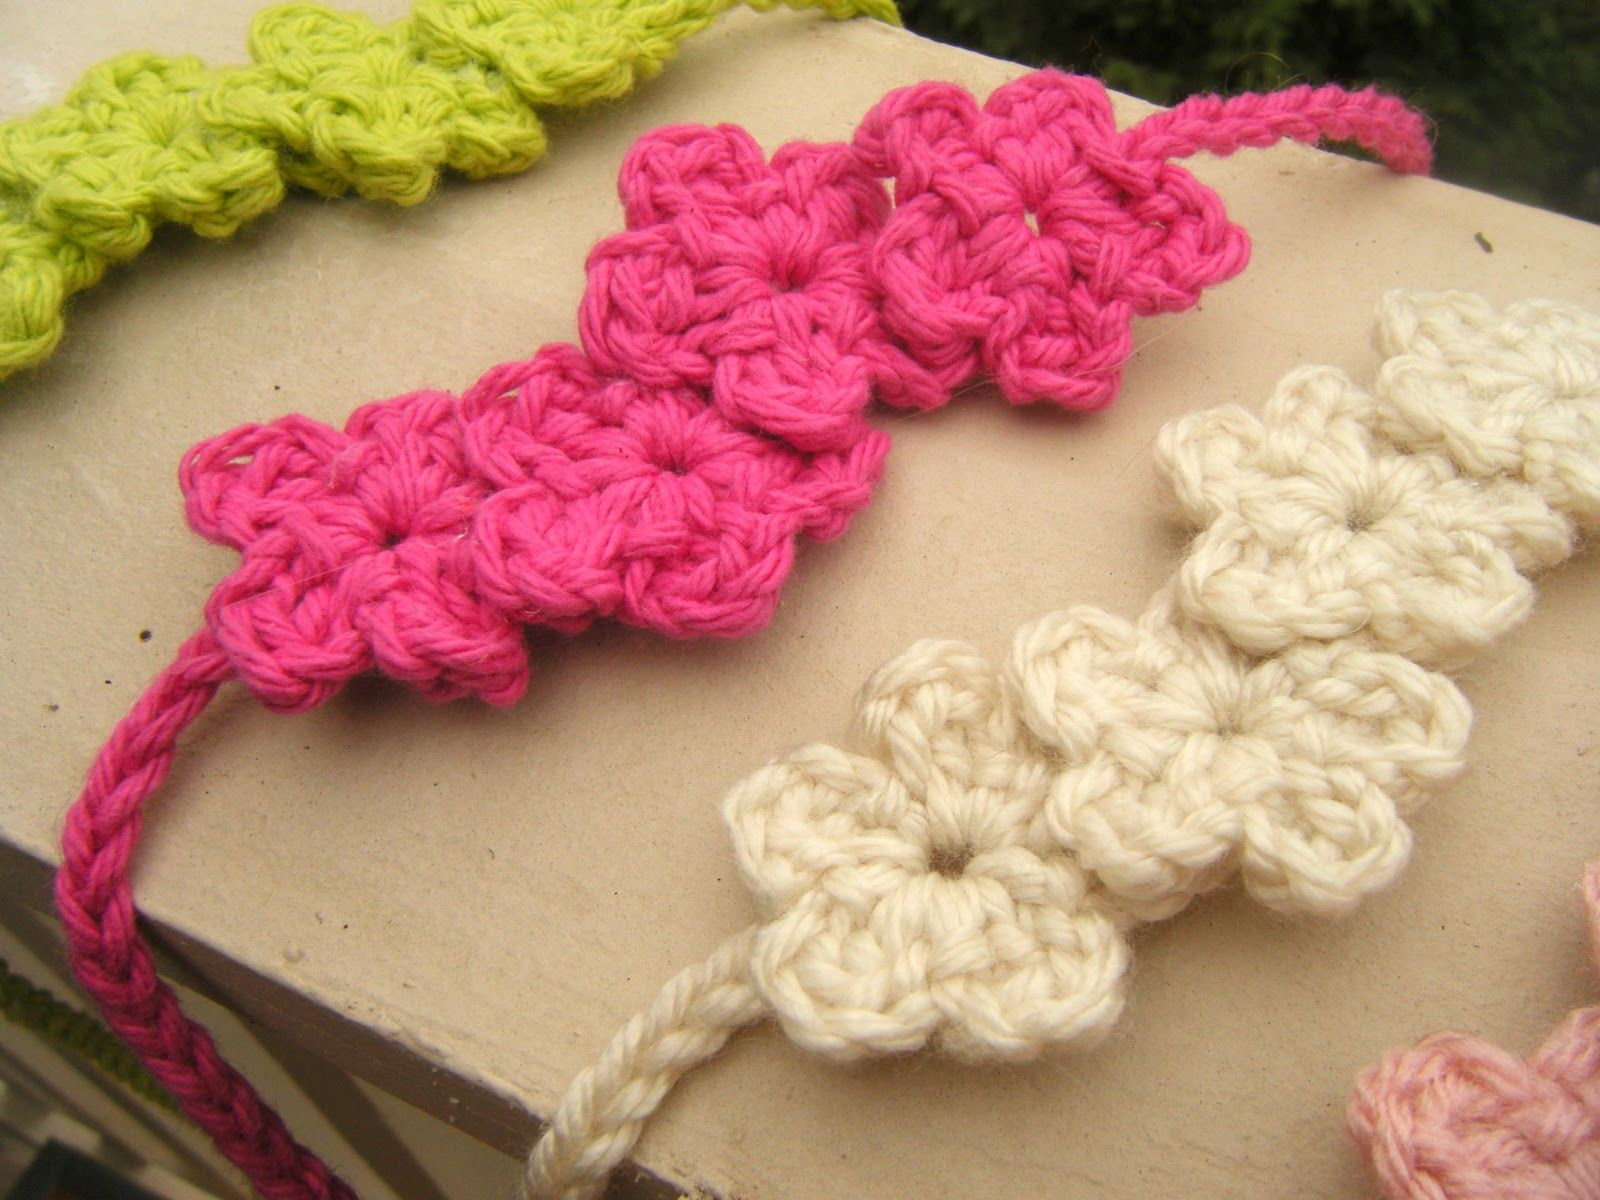 Dscf4469g 16001200 flower hband pinterest crochet and tiny blooms headband so cute baditri Image collections